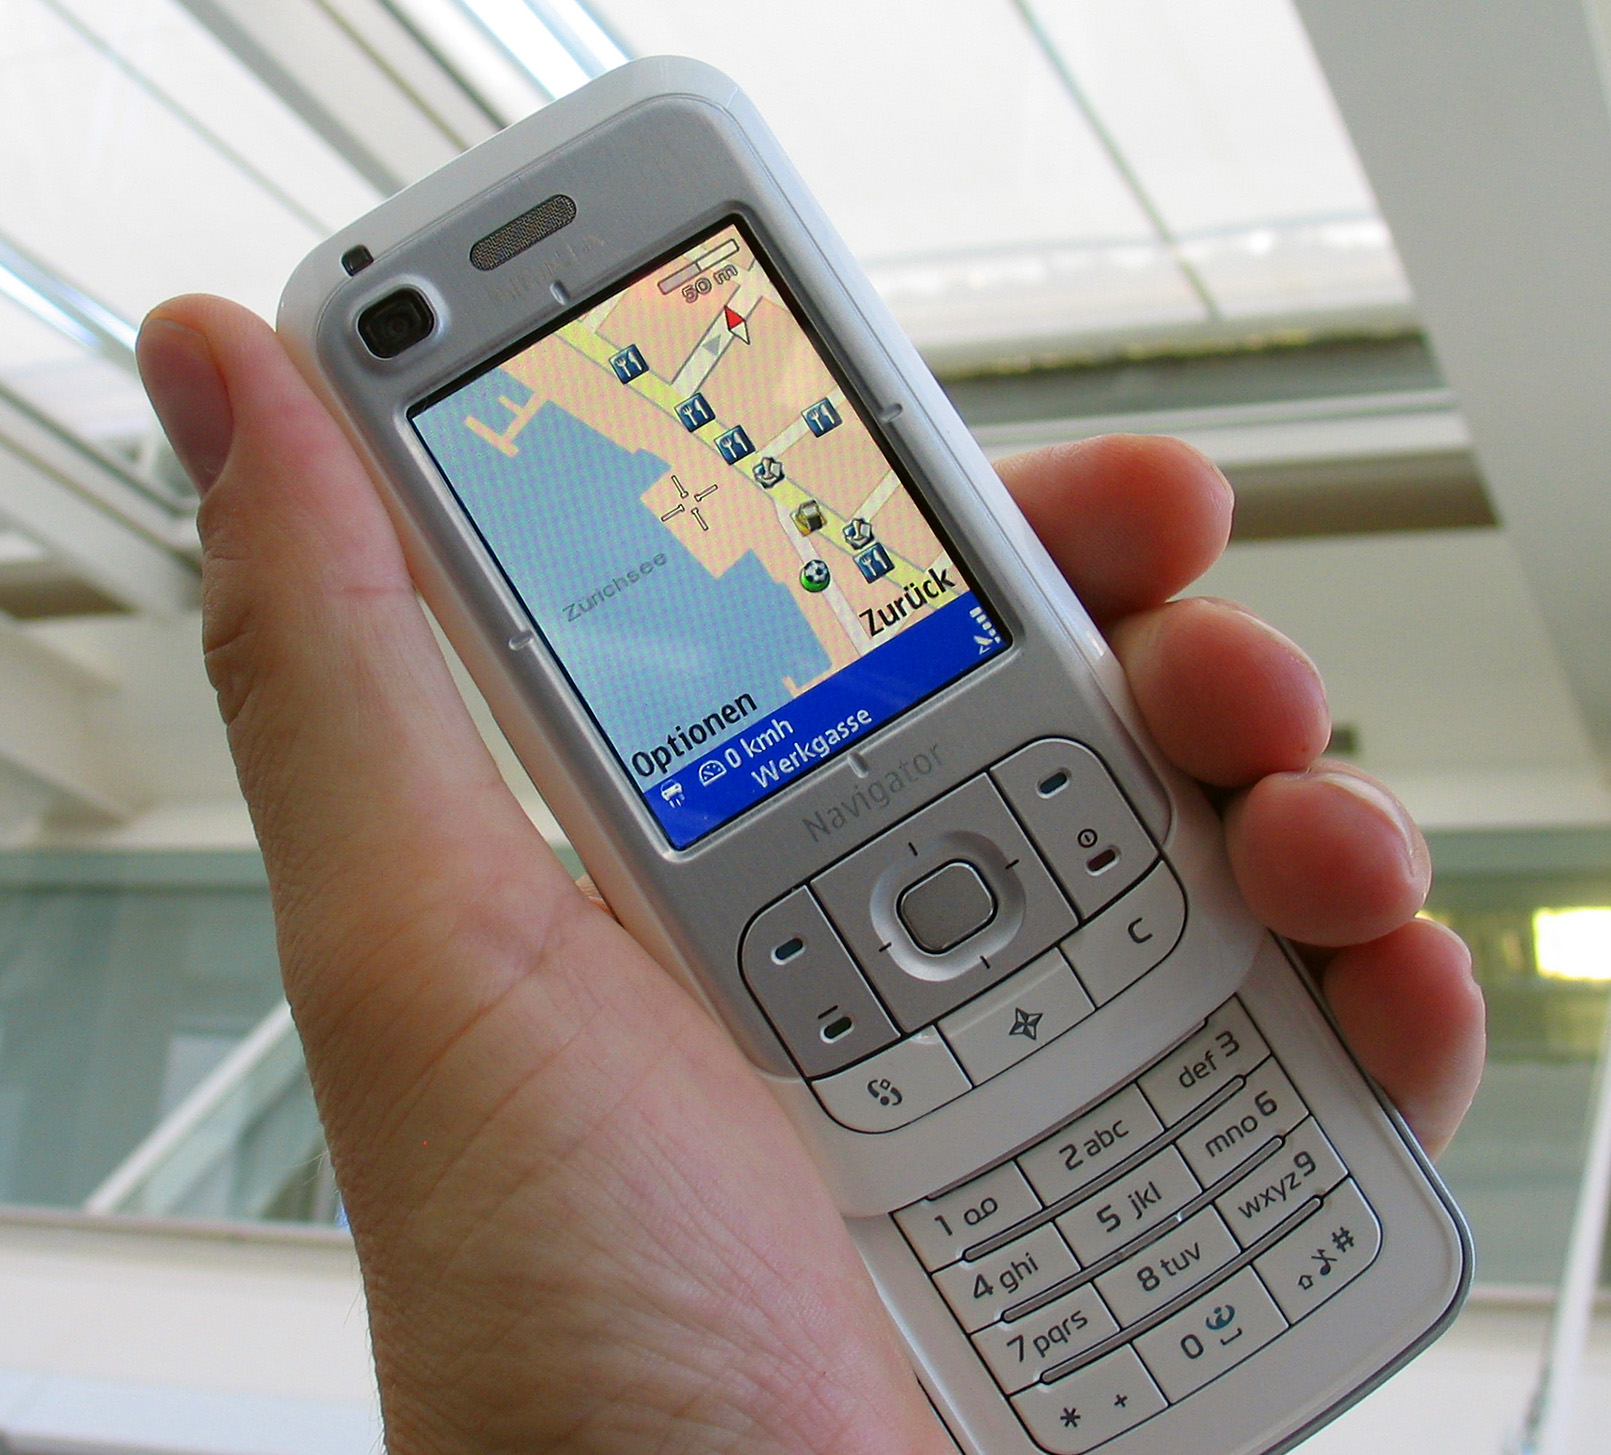 nokia e71 map loader download